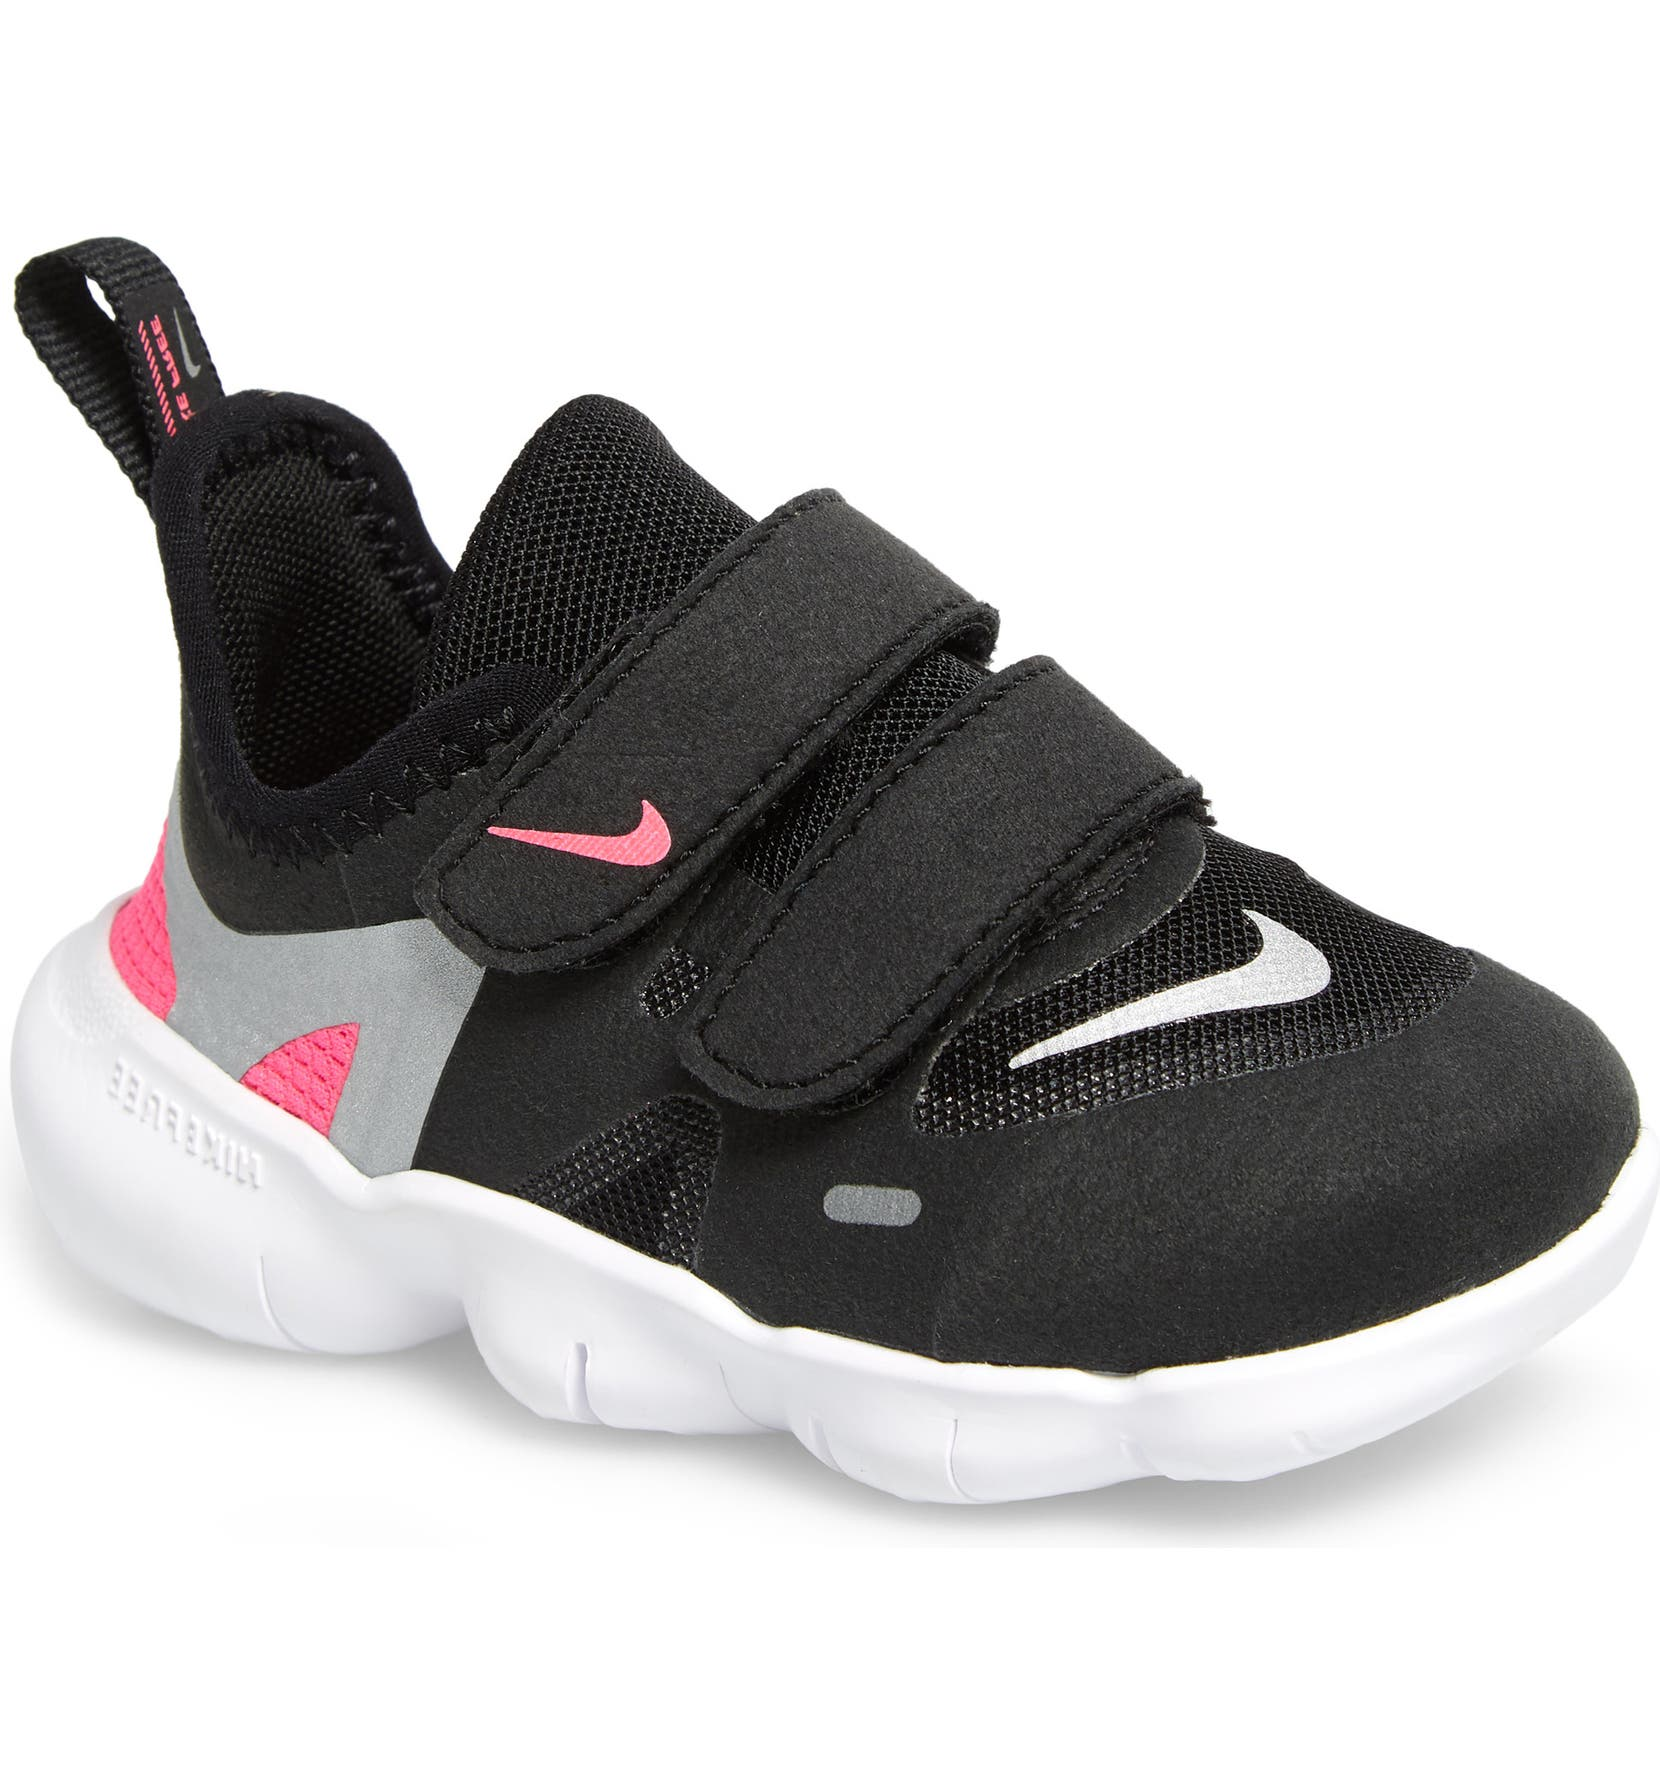 separation shoes 21aee c0276 Nike Free Run 5.0 Sneaker (Baby, Walker, Toddler   Little Kid)   Nordstrom